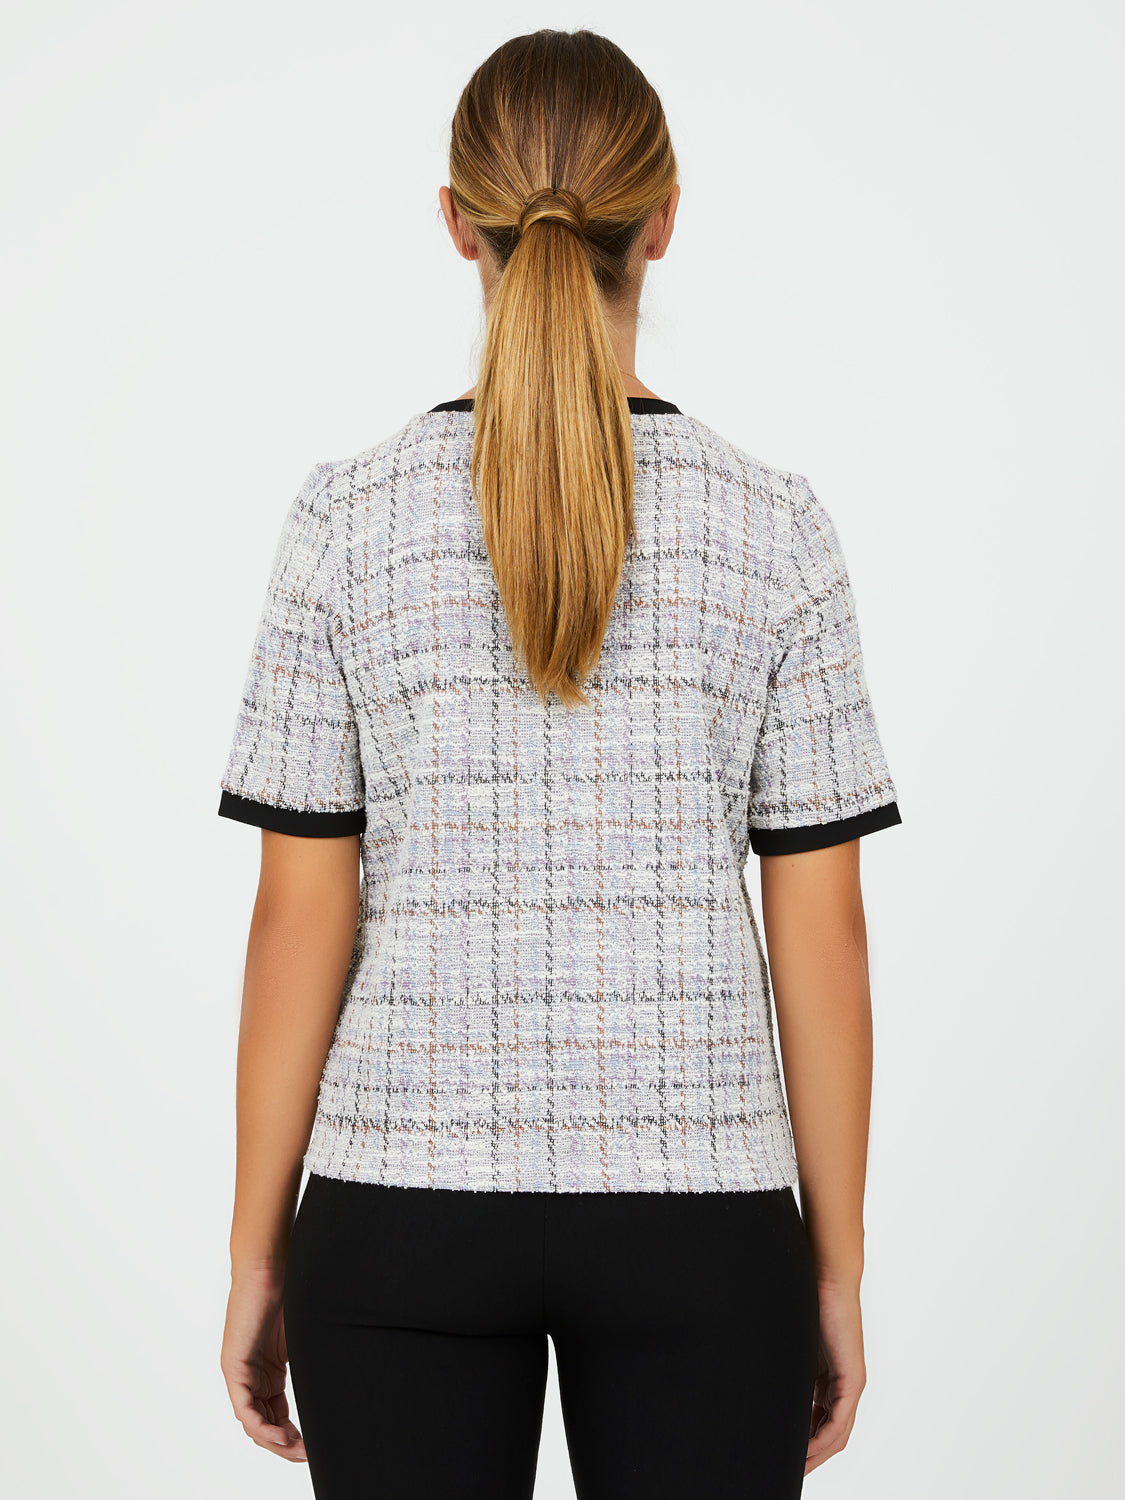 Boucle Plaid Short Sleeve Top